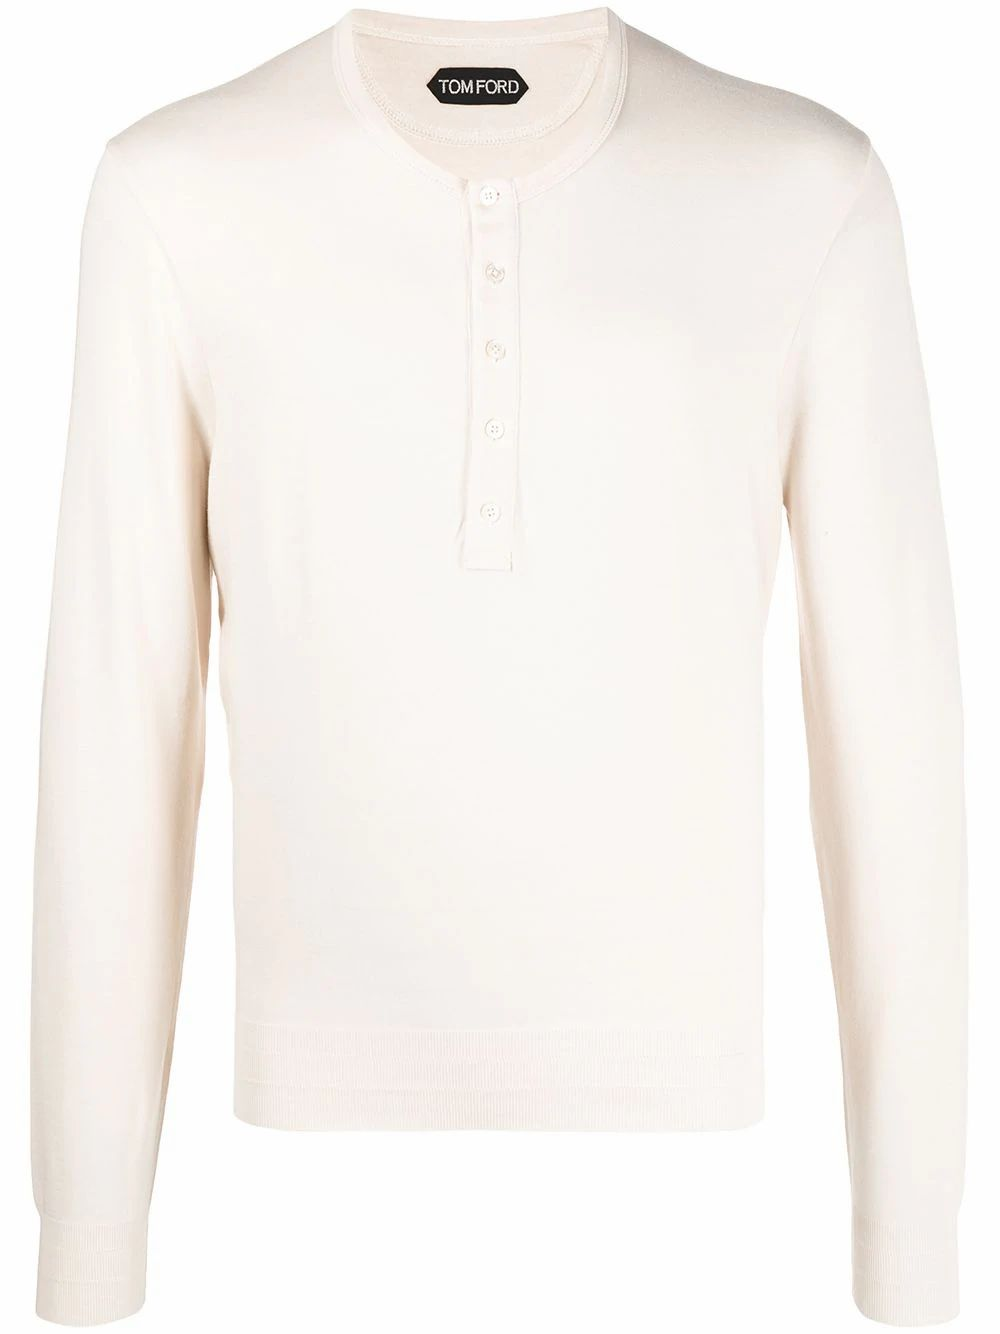 Tom Ford TOM FORD MEN'S BEIGE COTTON T-SHIRT